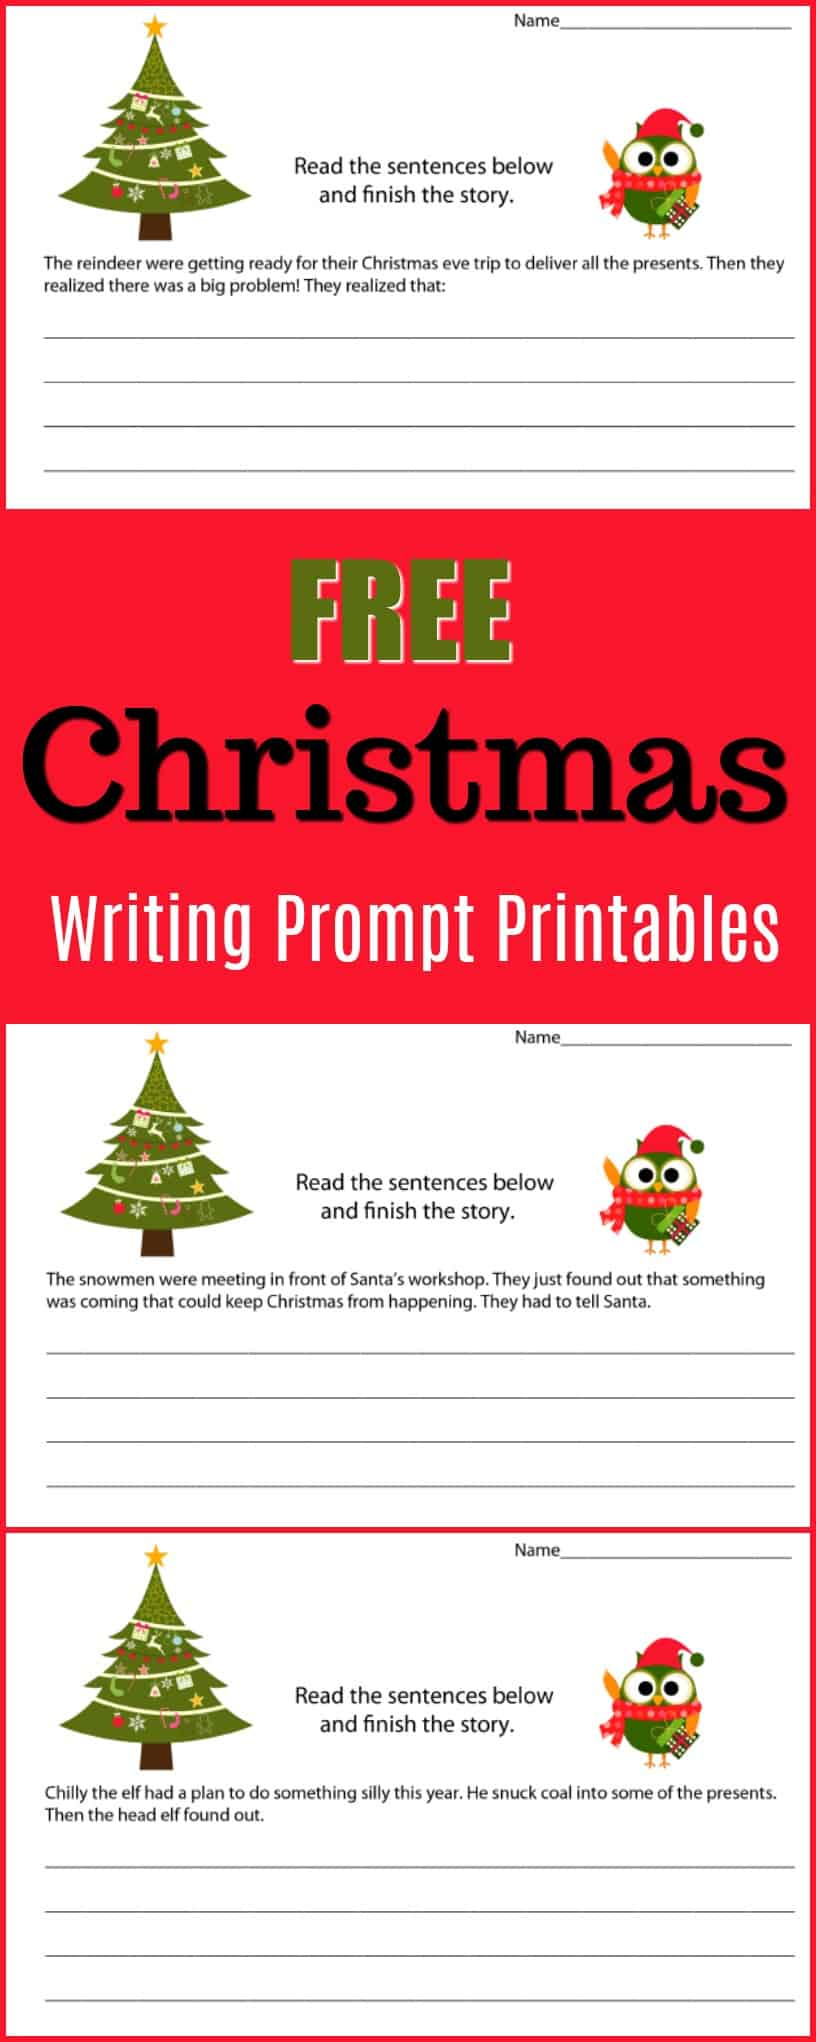 Free Christmas Writing Prompt Printables